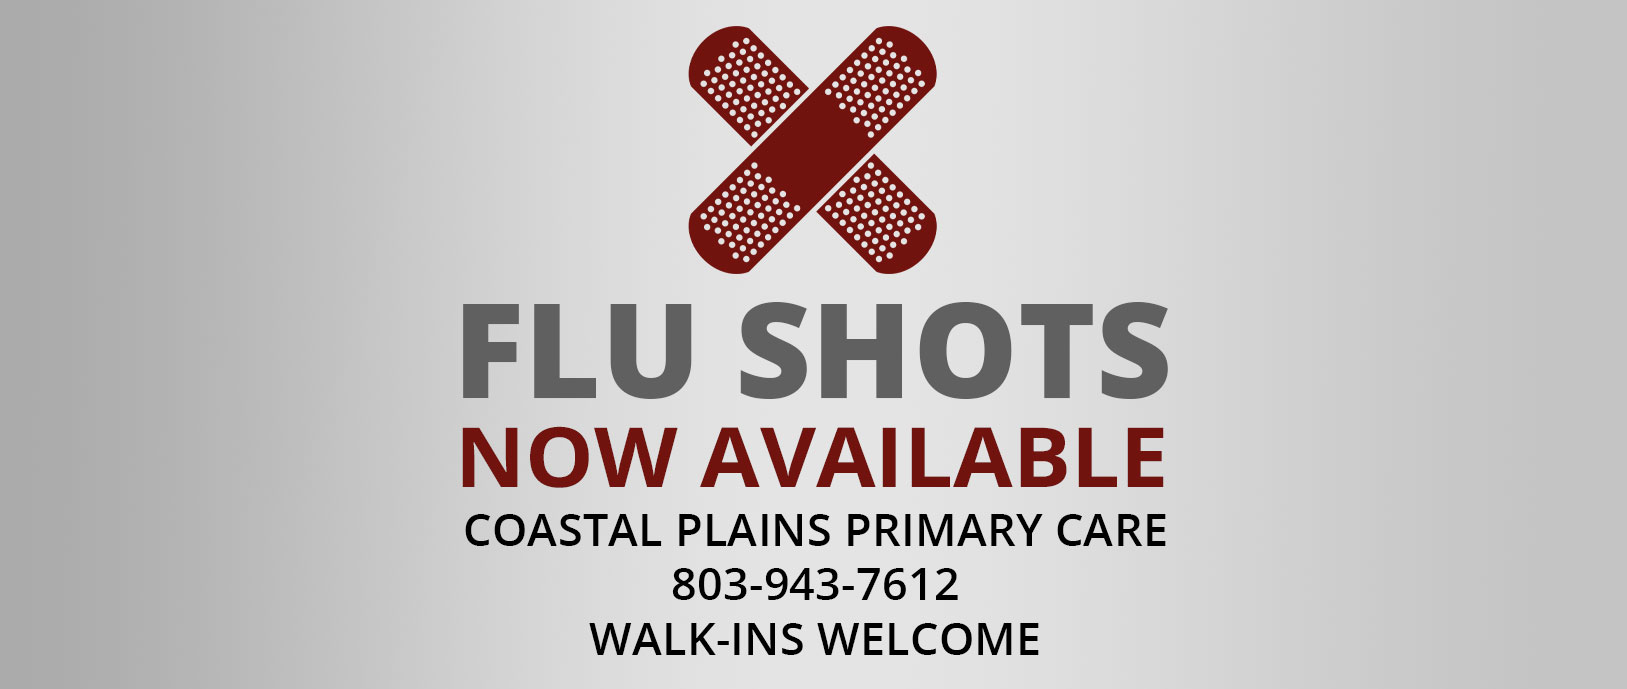 Flu Shots Now Available Coastal Plains Primary Care 803-943-7612 WALK-INS WELCOME